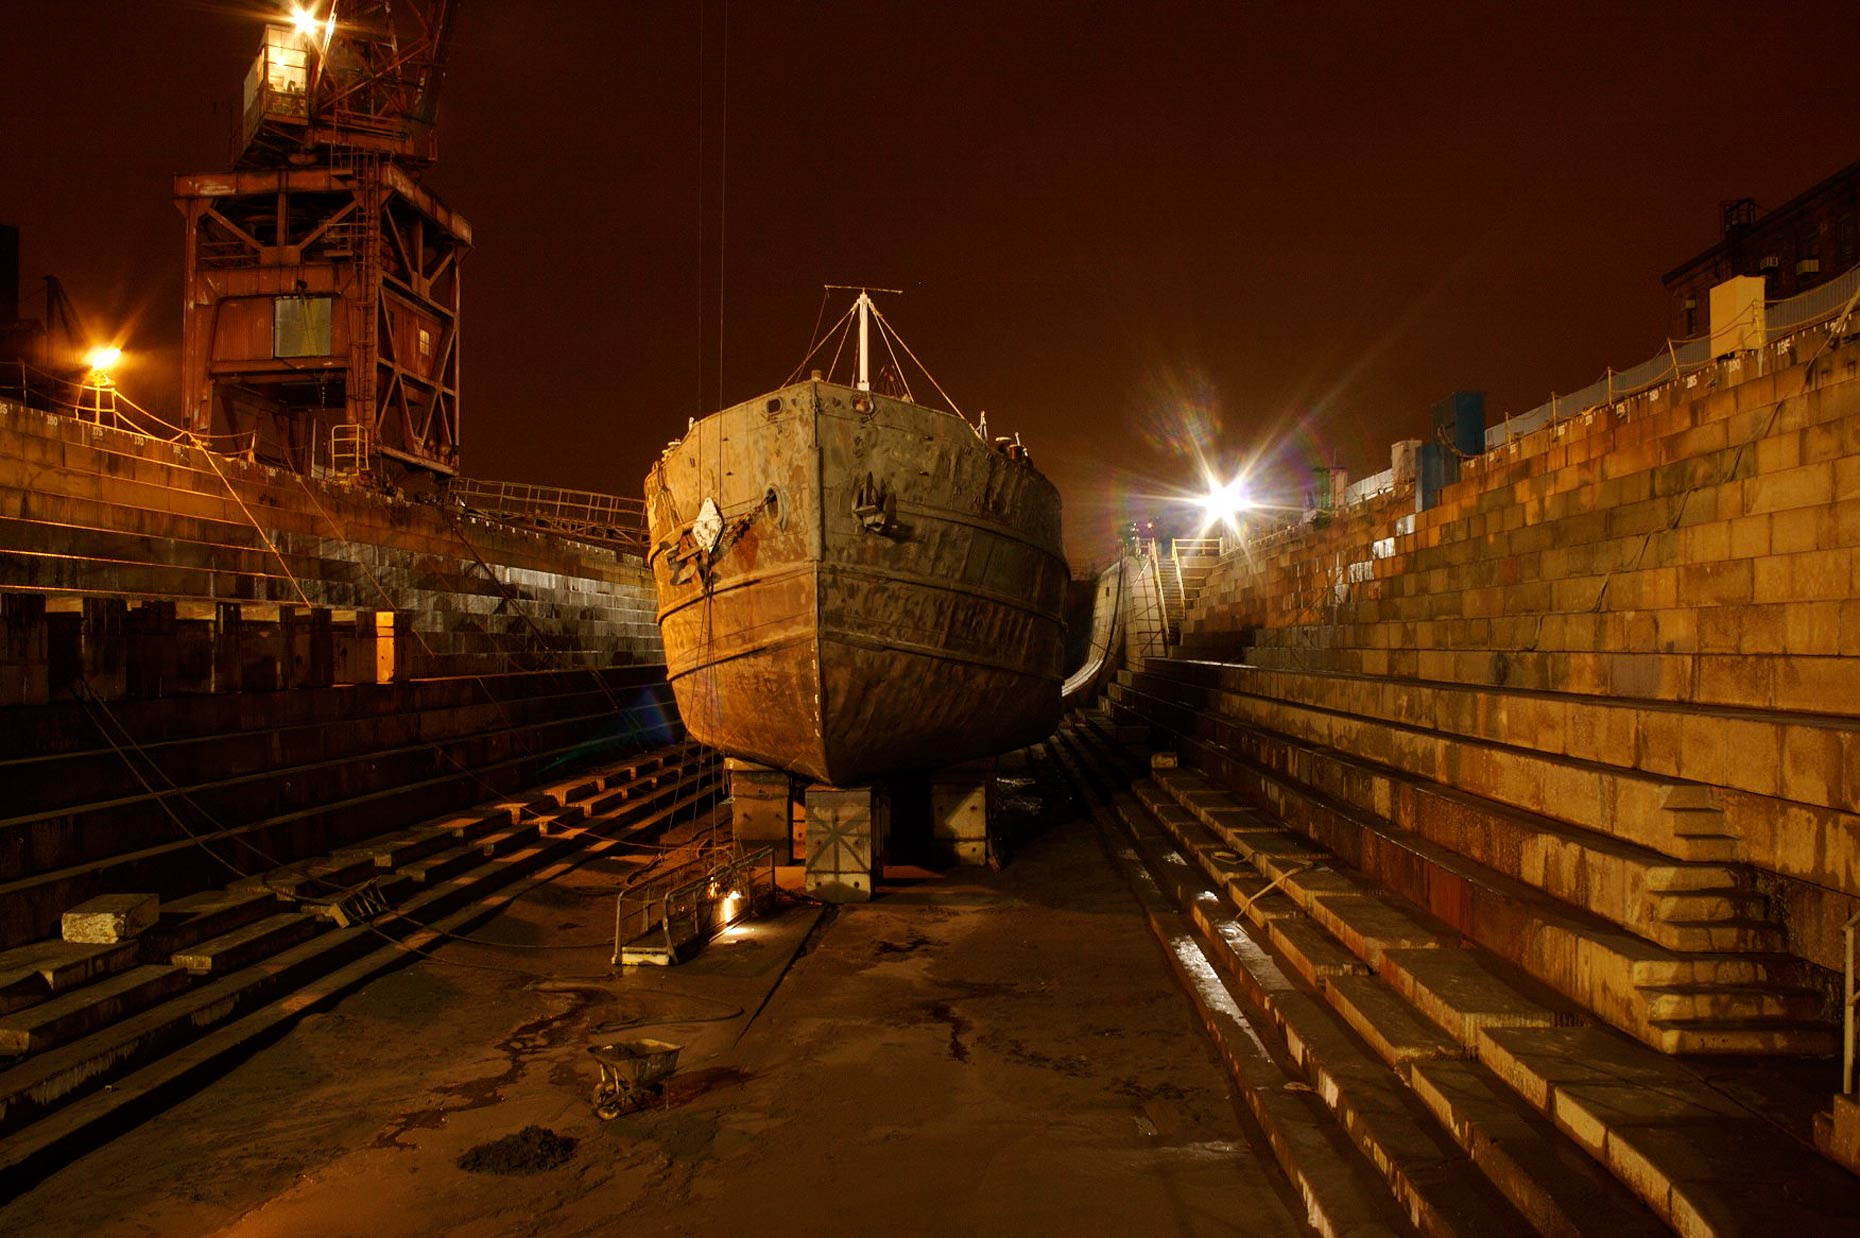 The Tanker Mary Whalen in Dry Dock.